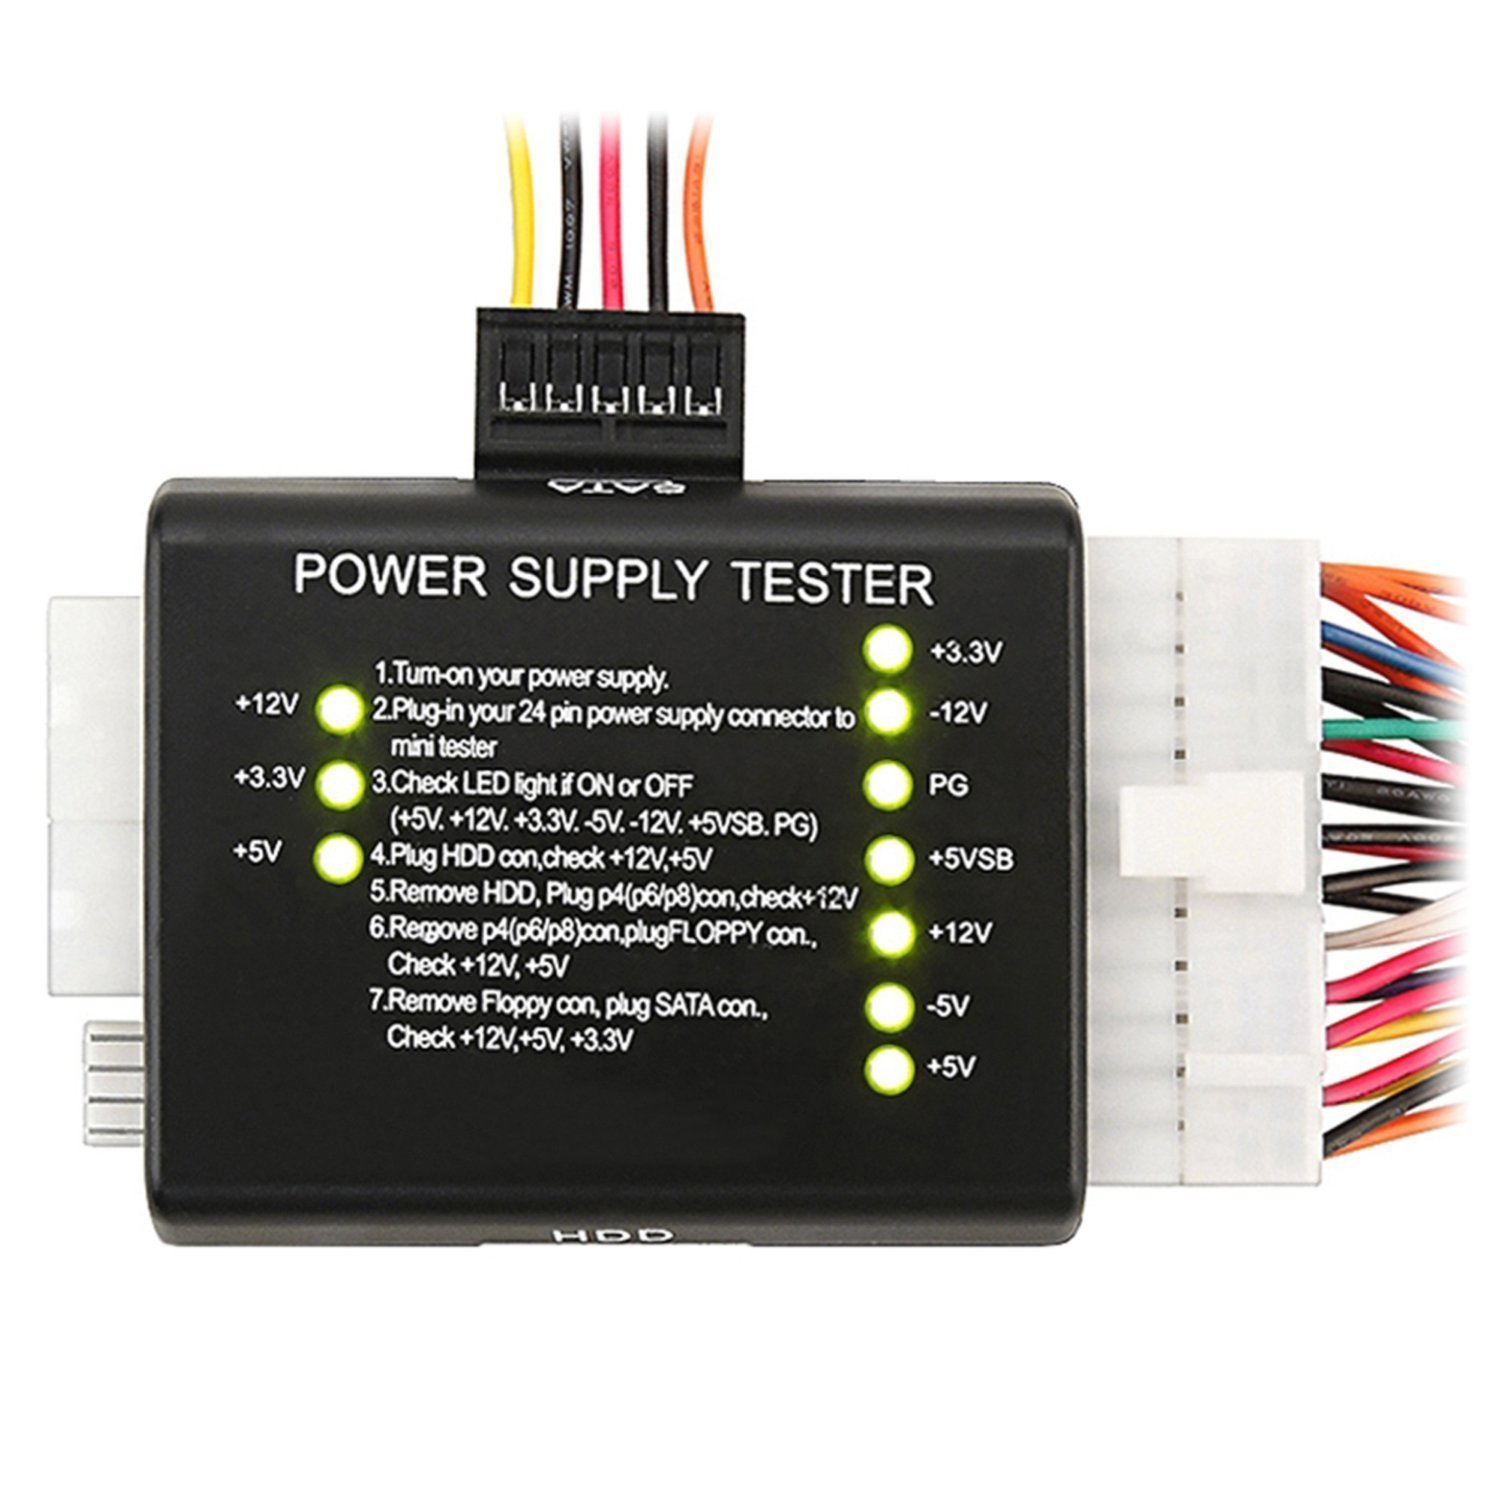 20 / 24 pin Test Diagnostic Desktop PC Power Voltage Supply Tester for ATX SATA HDD Port